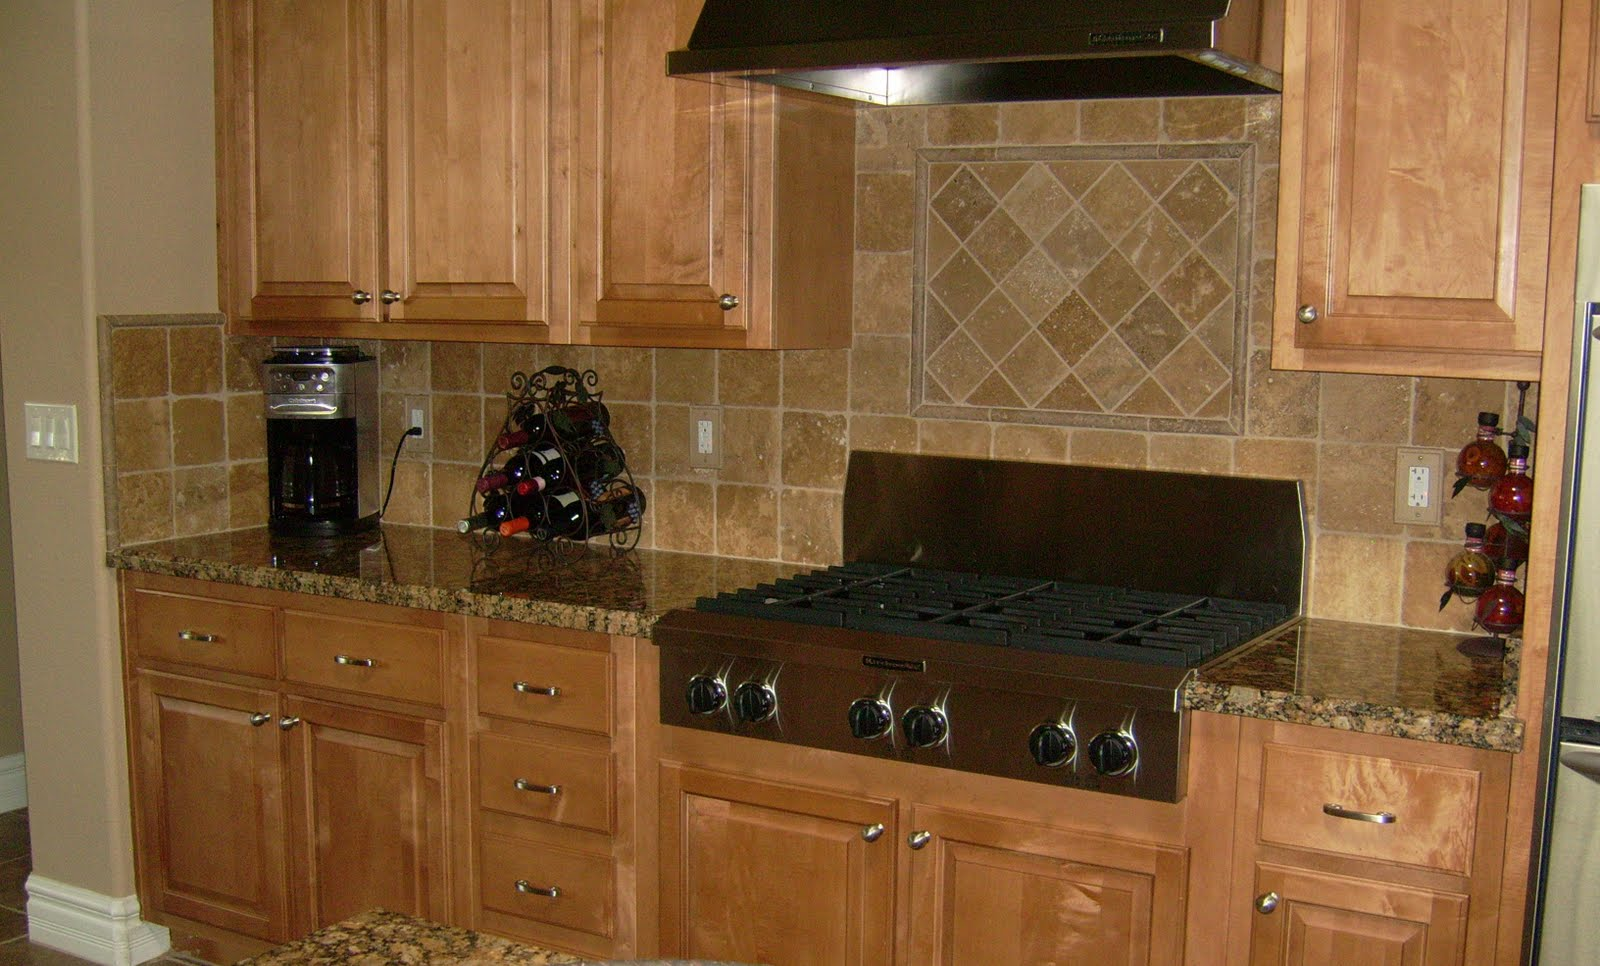 kitchen cabinet design ideas photos on Pictures Kitchen Backsplash Ideas 6x6 Tumbled Stone Kitchen Backsplash ...